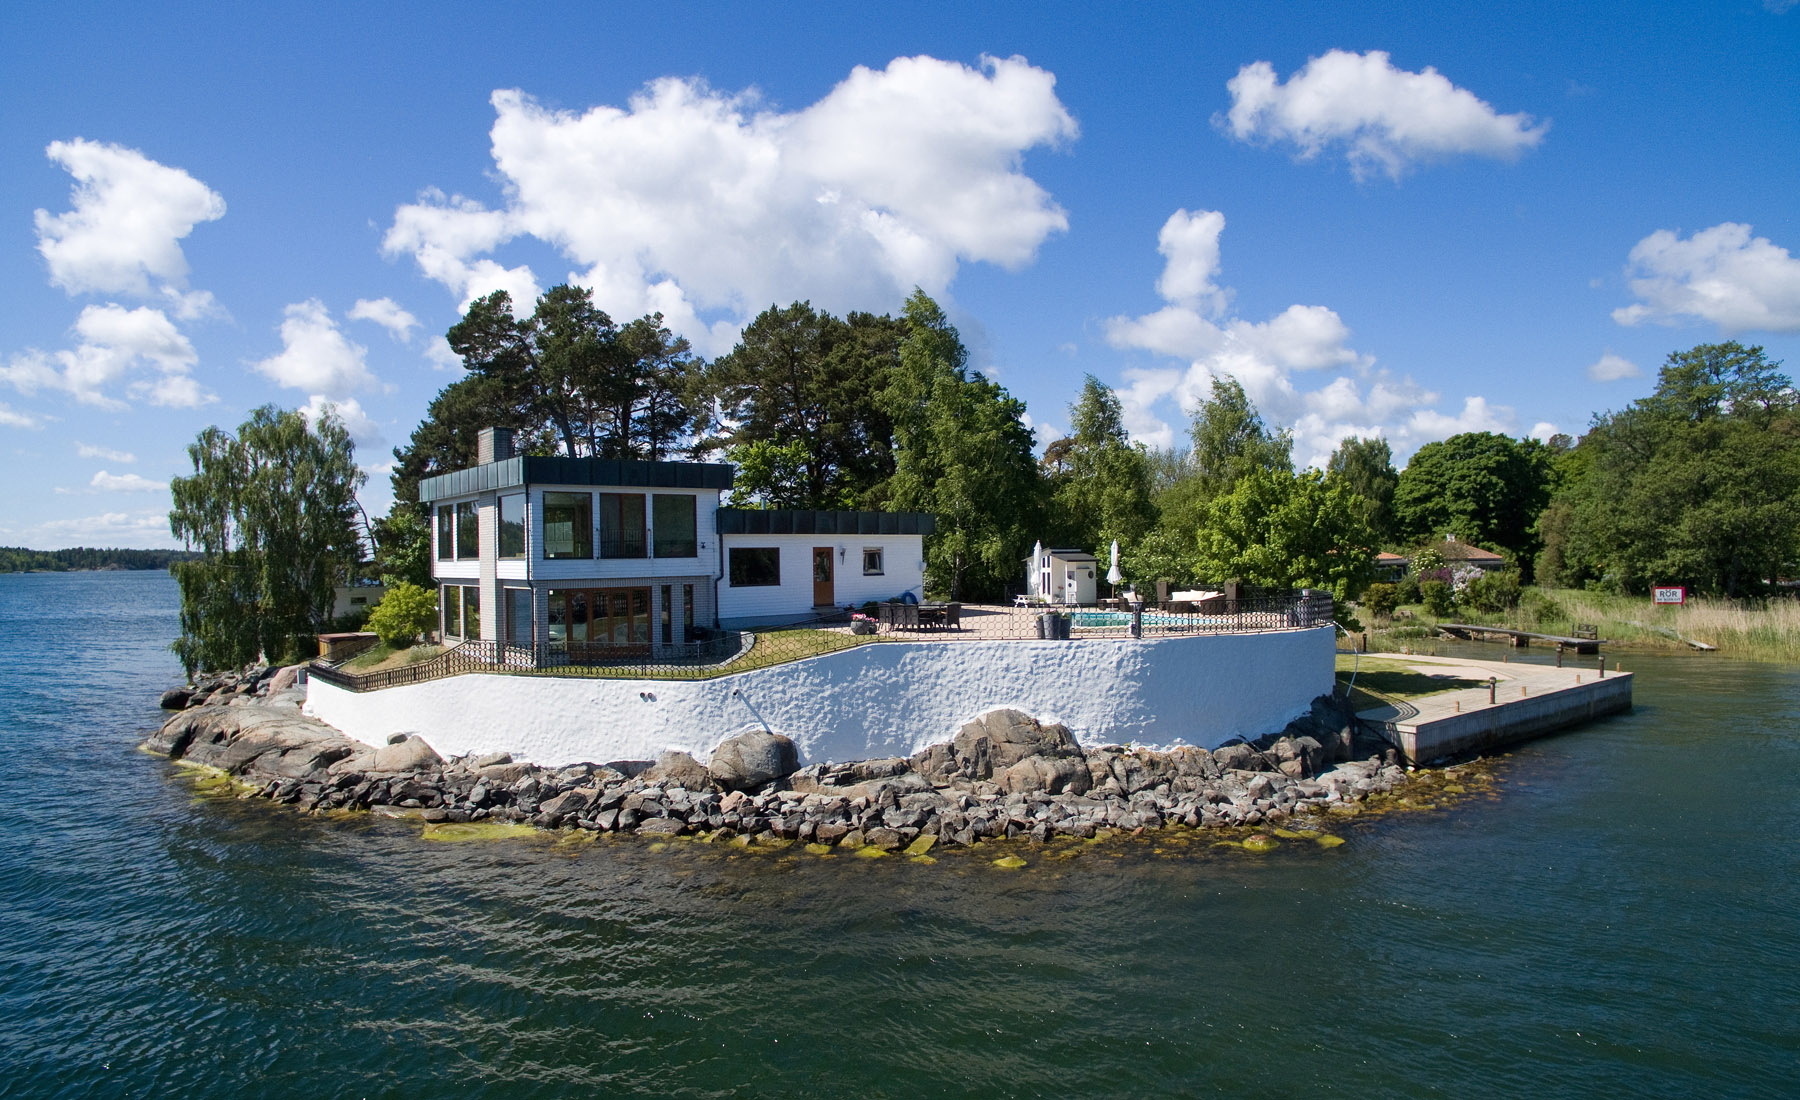 Single Family Home for Sale at Private island with a bridge Other Stockholm, Stockholm, Sweden